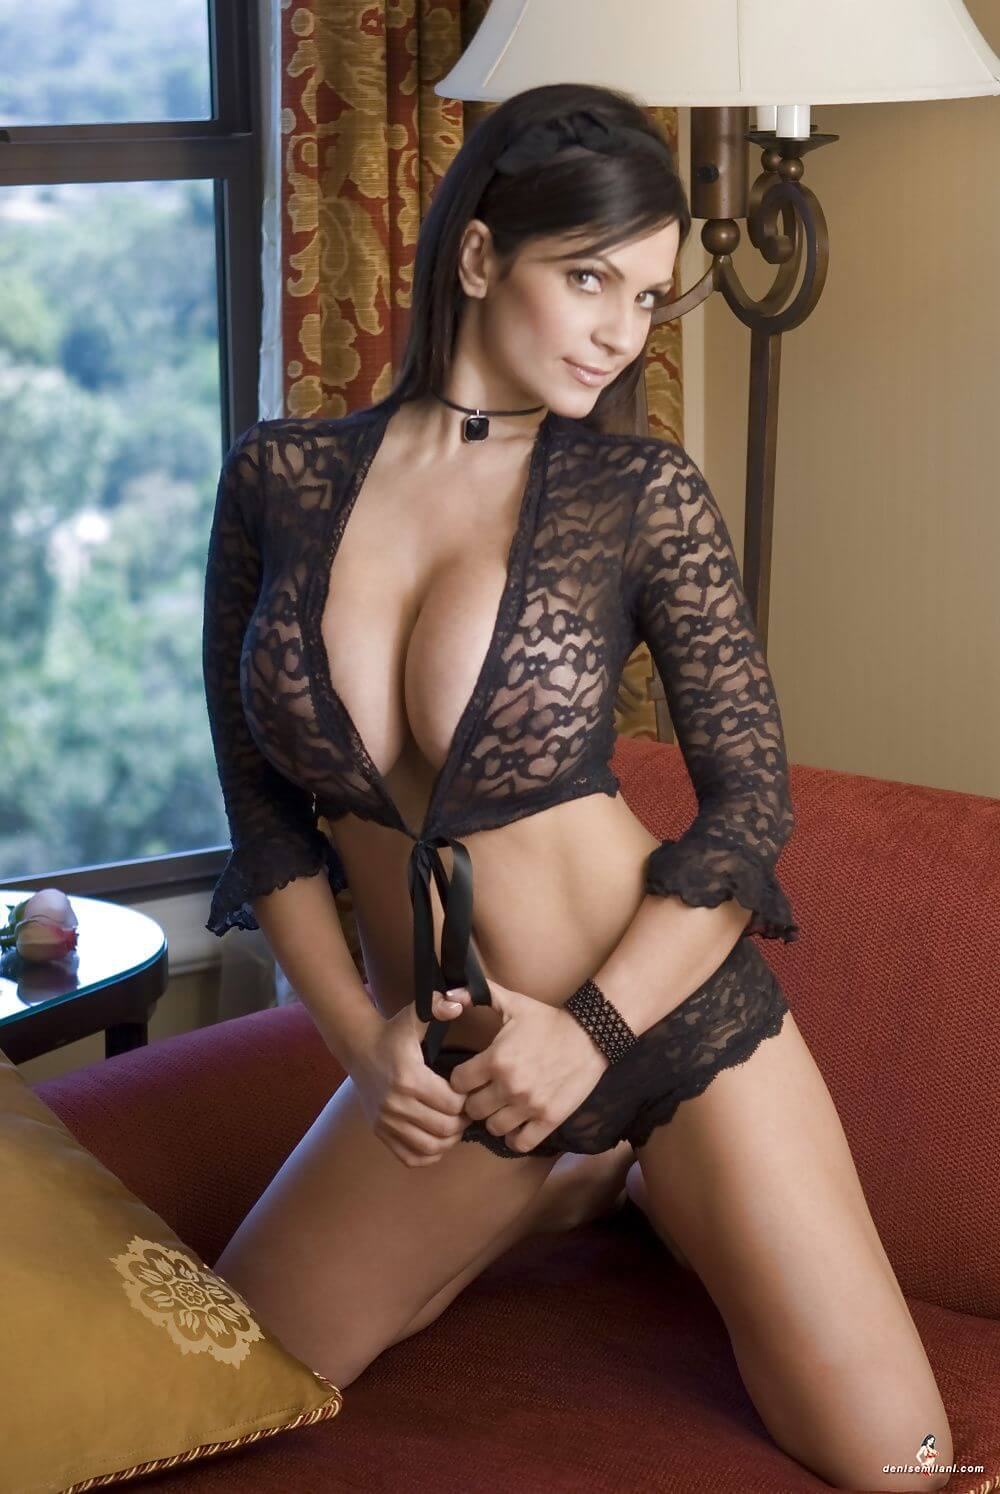 Denise Milani hot bikin pictures